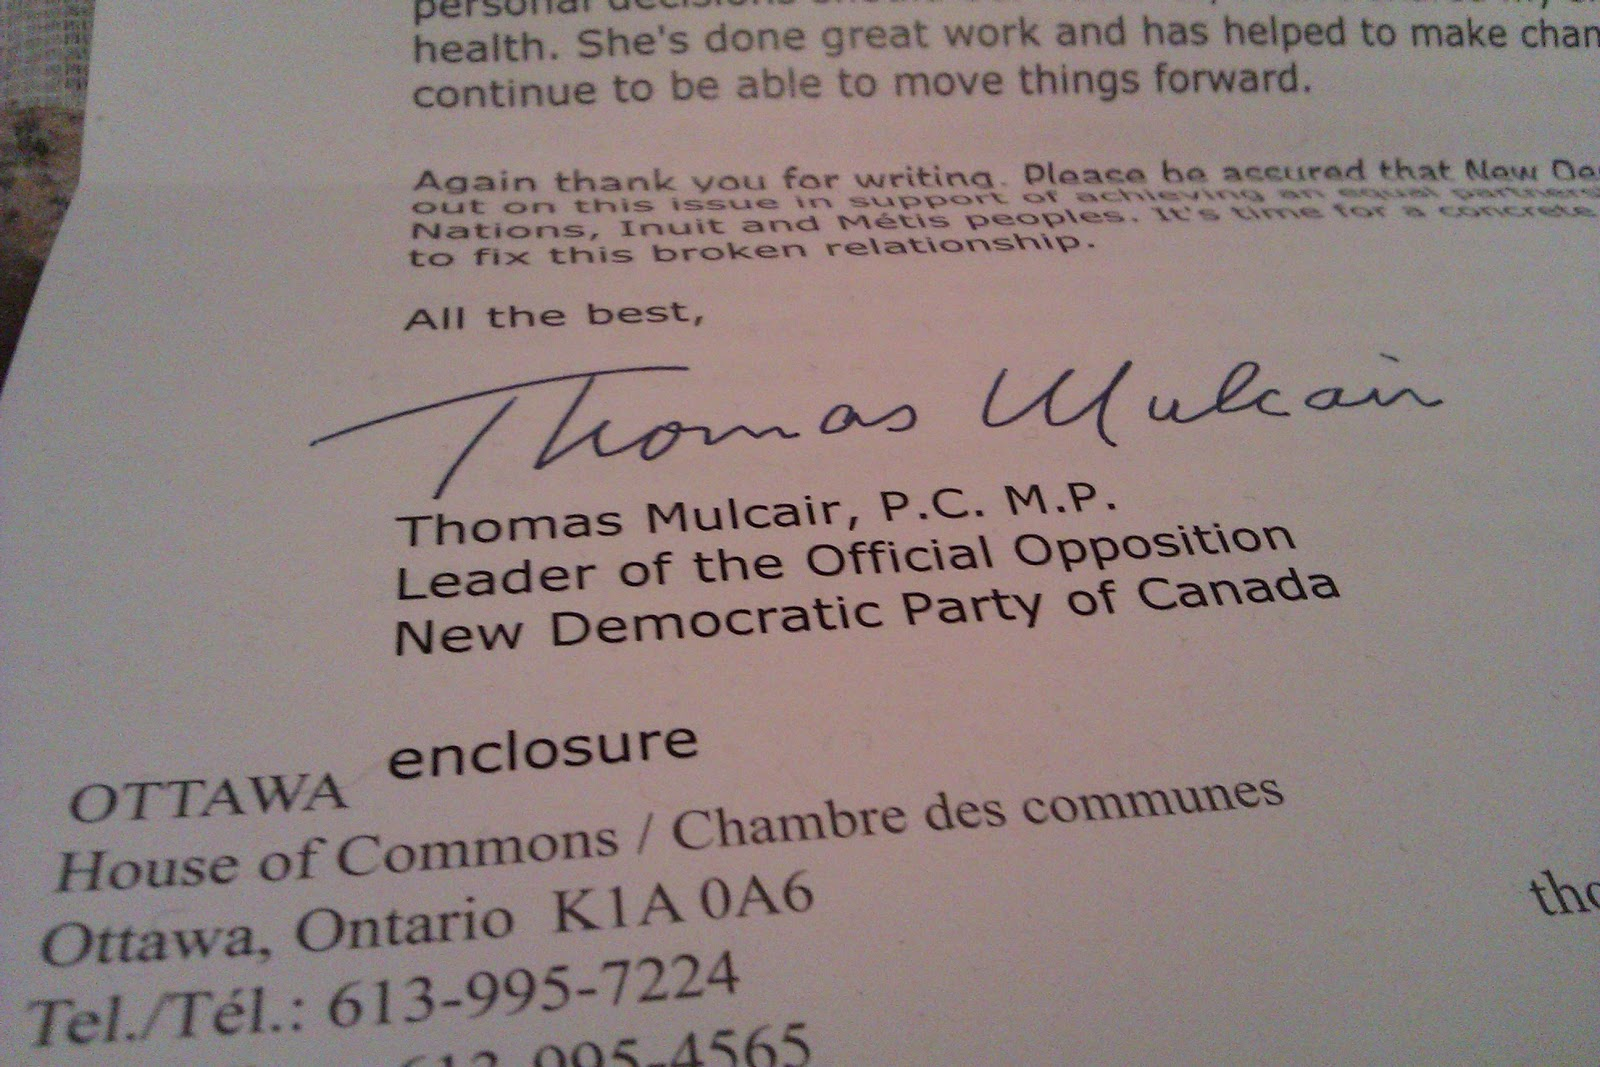 Treaty Walks: Thomas Mulcair Leader of the Official